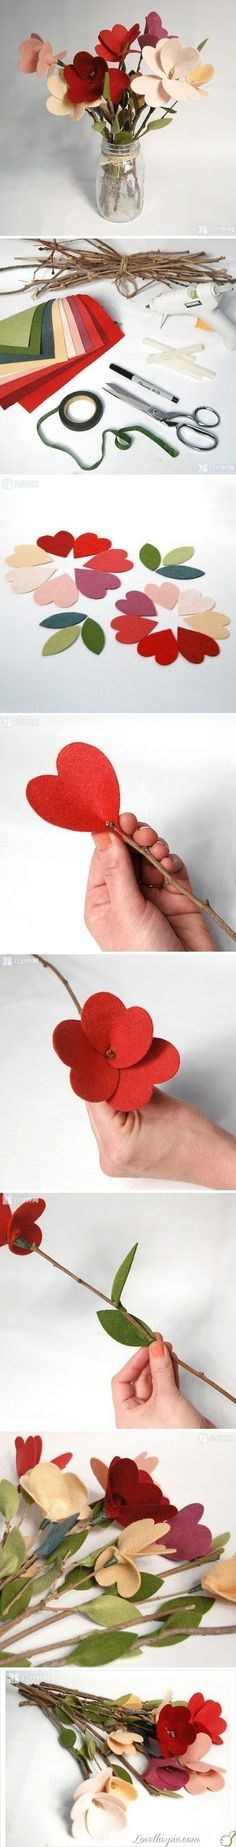 DIY felt flowers flowers diy crafts home made easy crafts craft idea crafts ideas diy ideas diy crafts diy idea do it yourself diy projects diy craft handmade felt